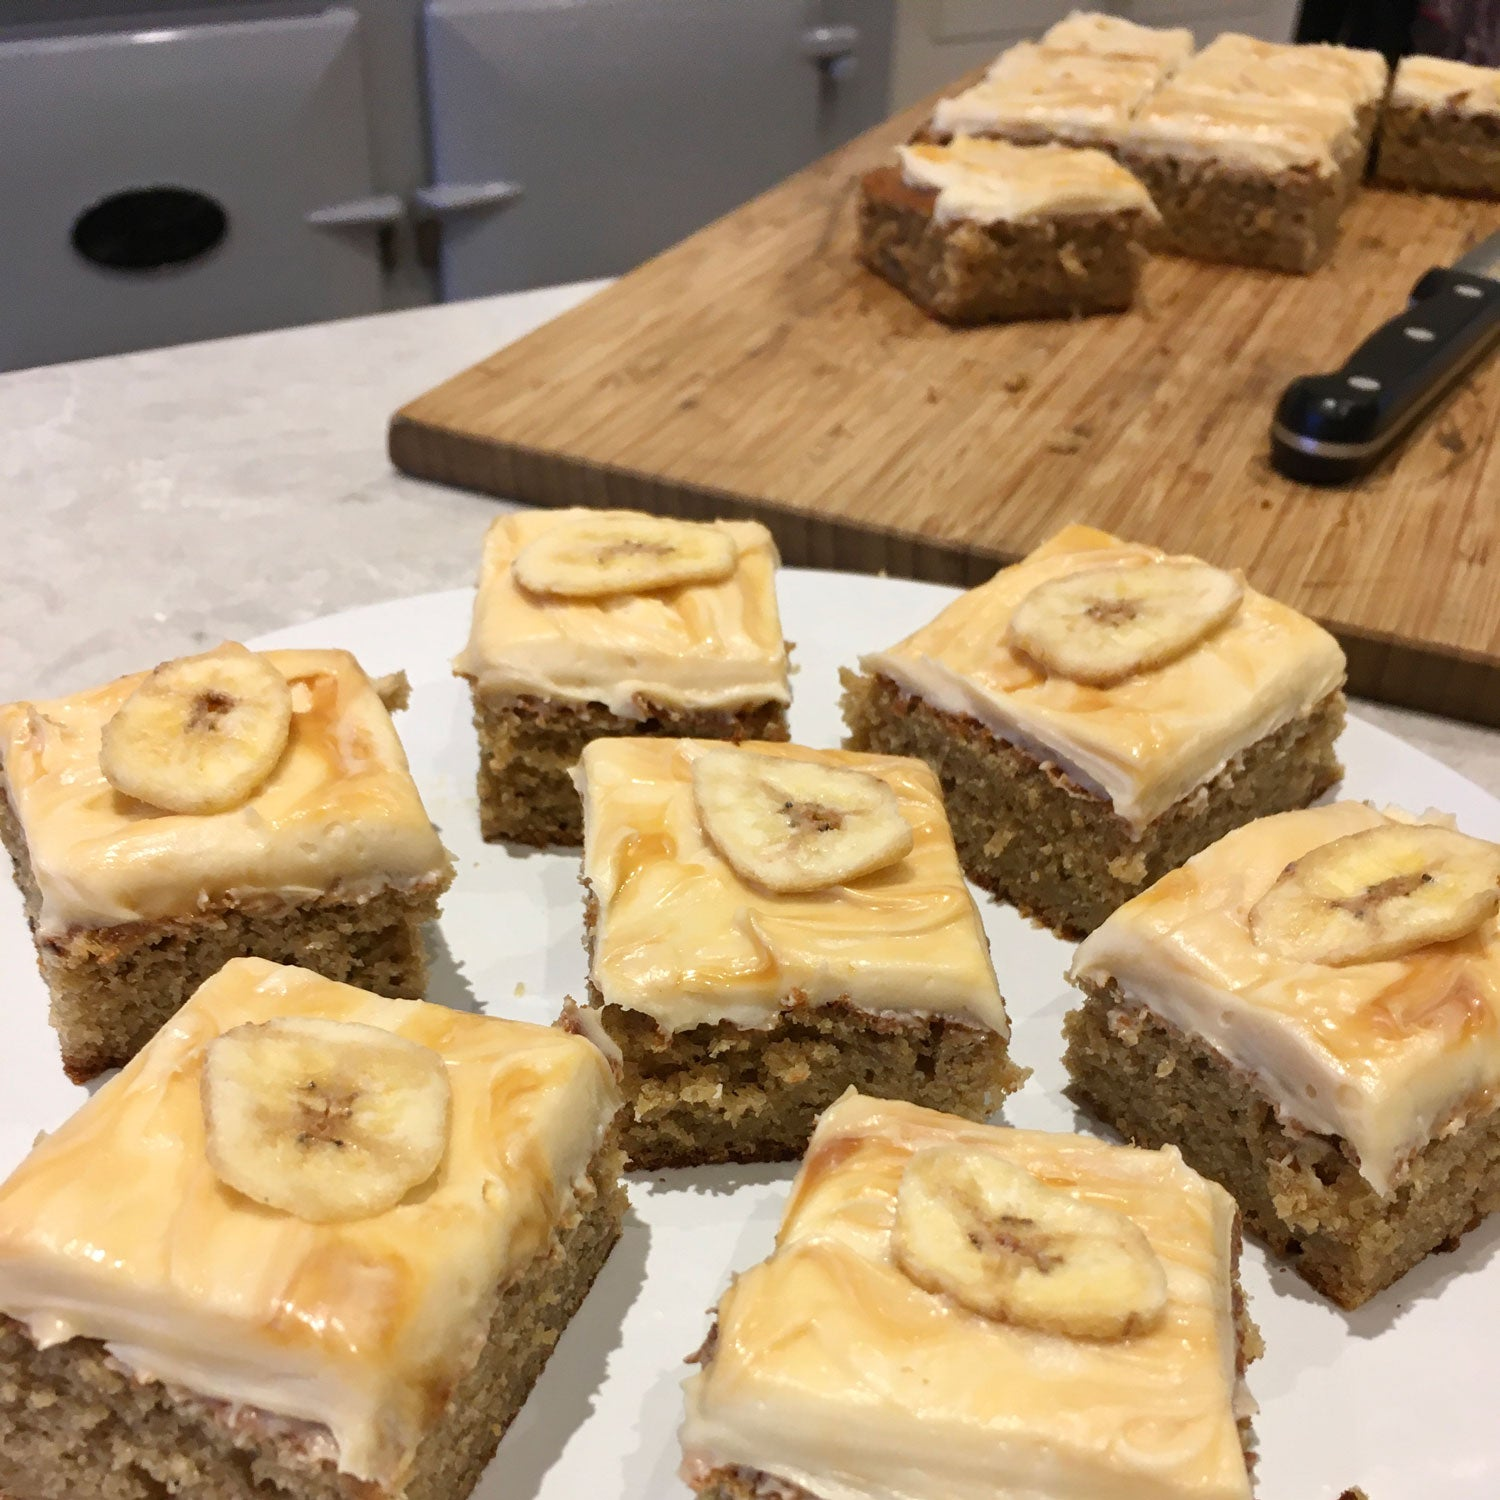 Banoffee traybake cake with instructions for use with Aga range cookers